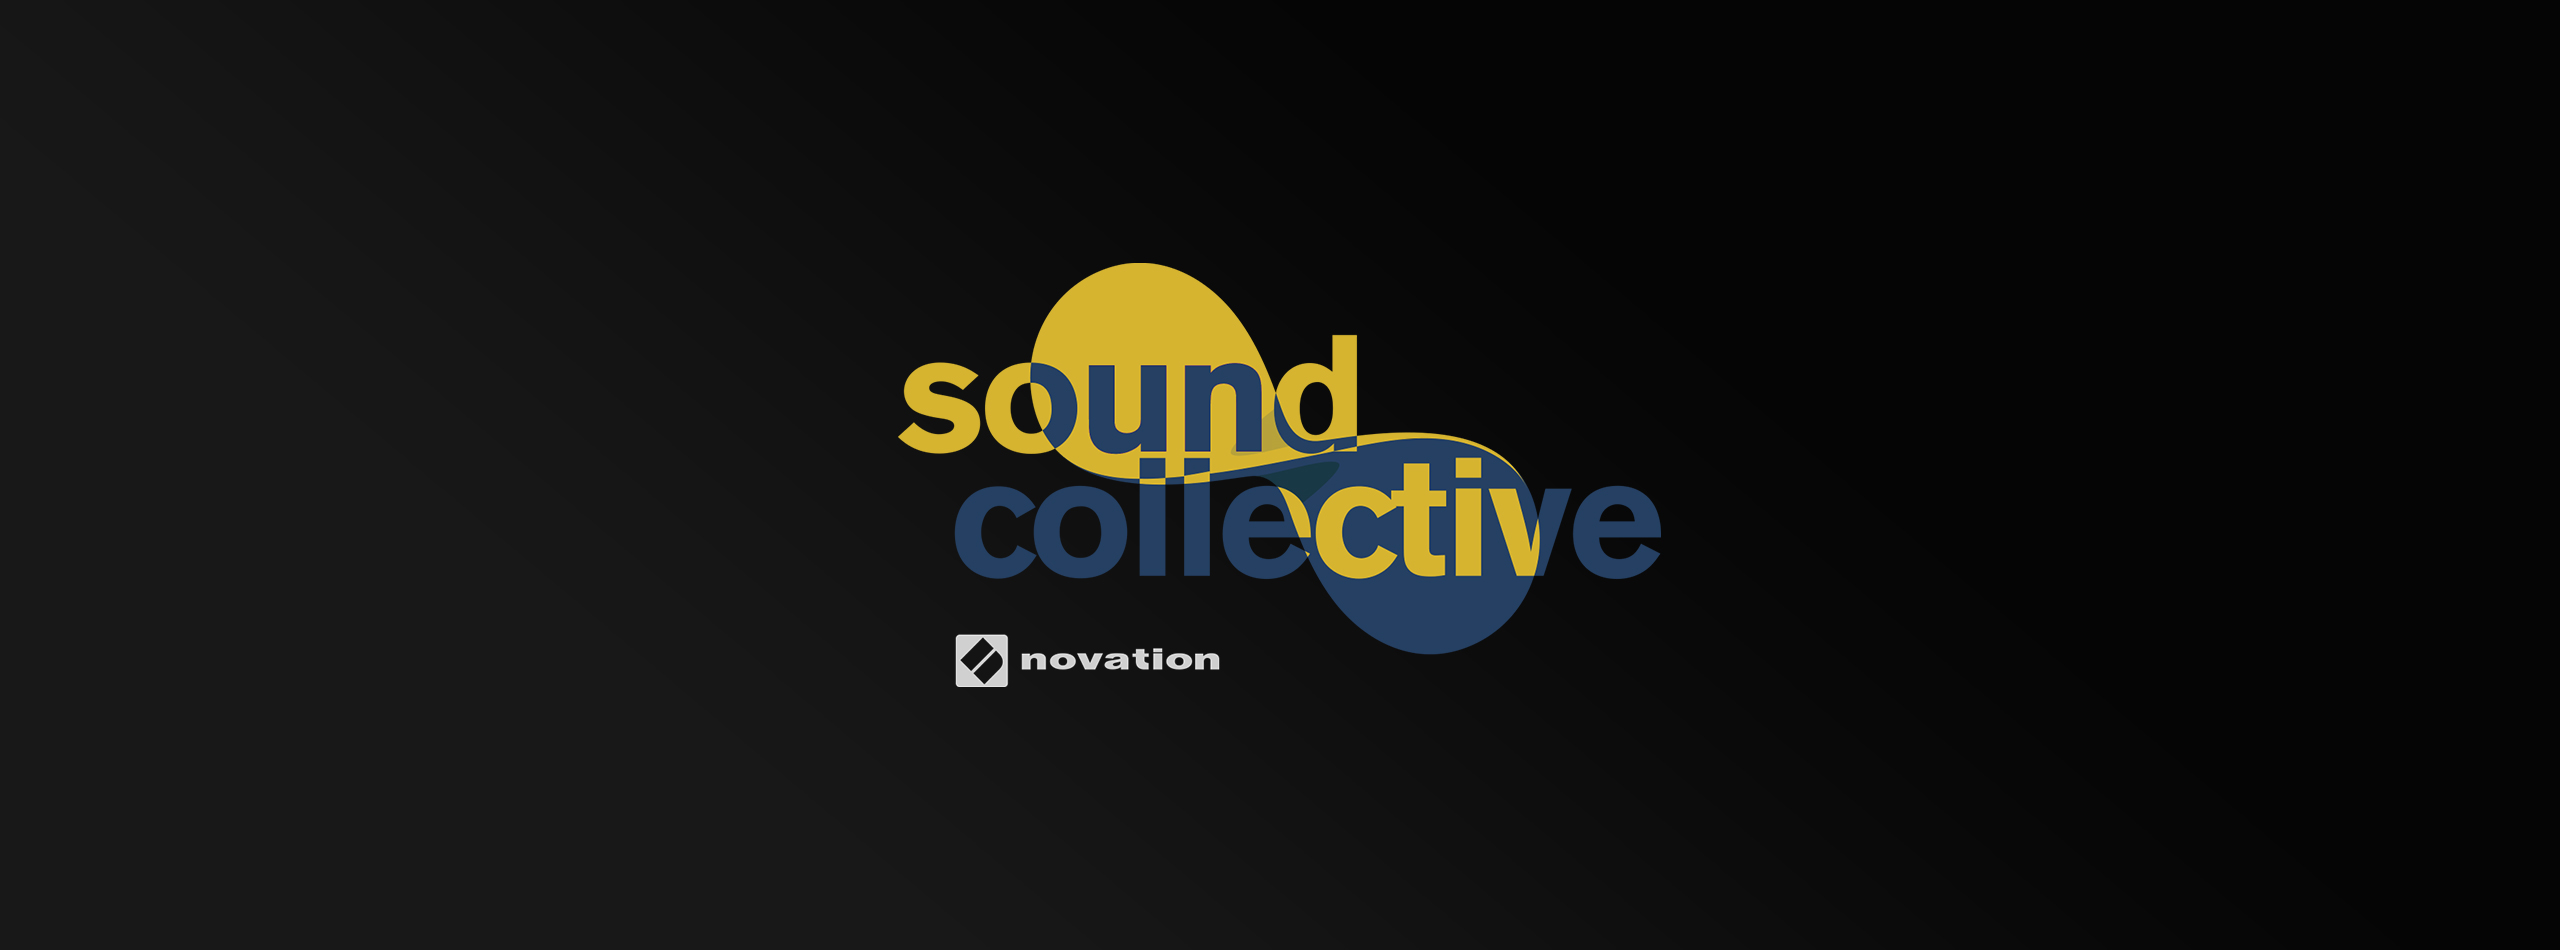 Sound Collective Hero Logo